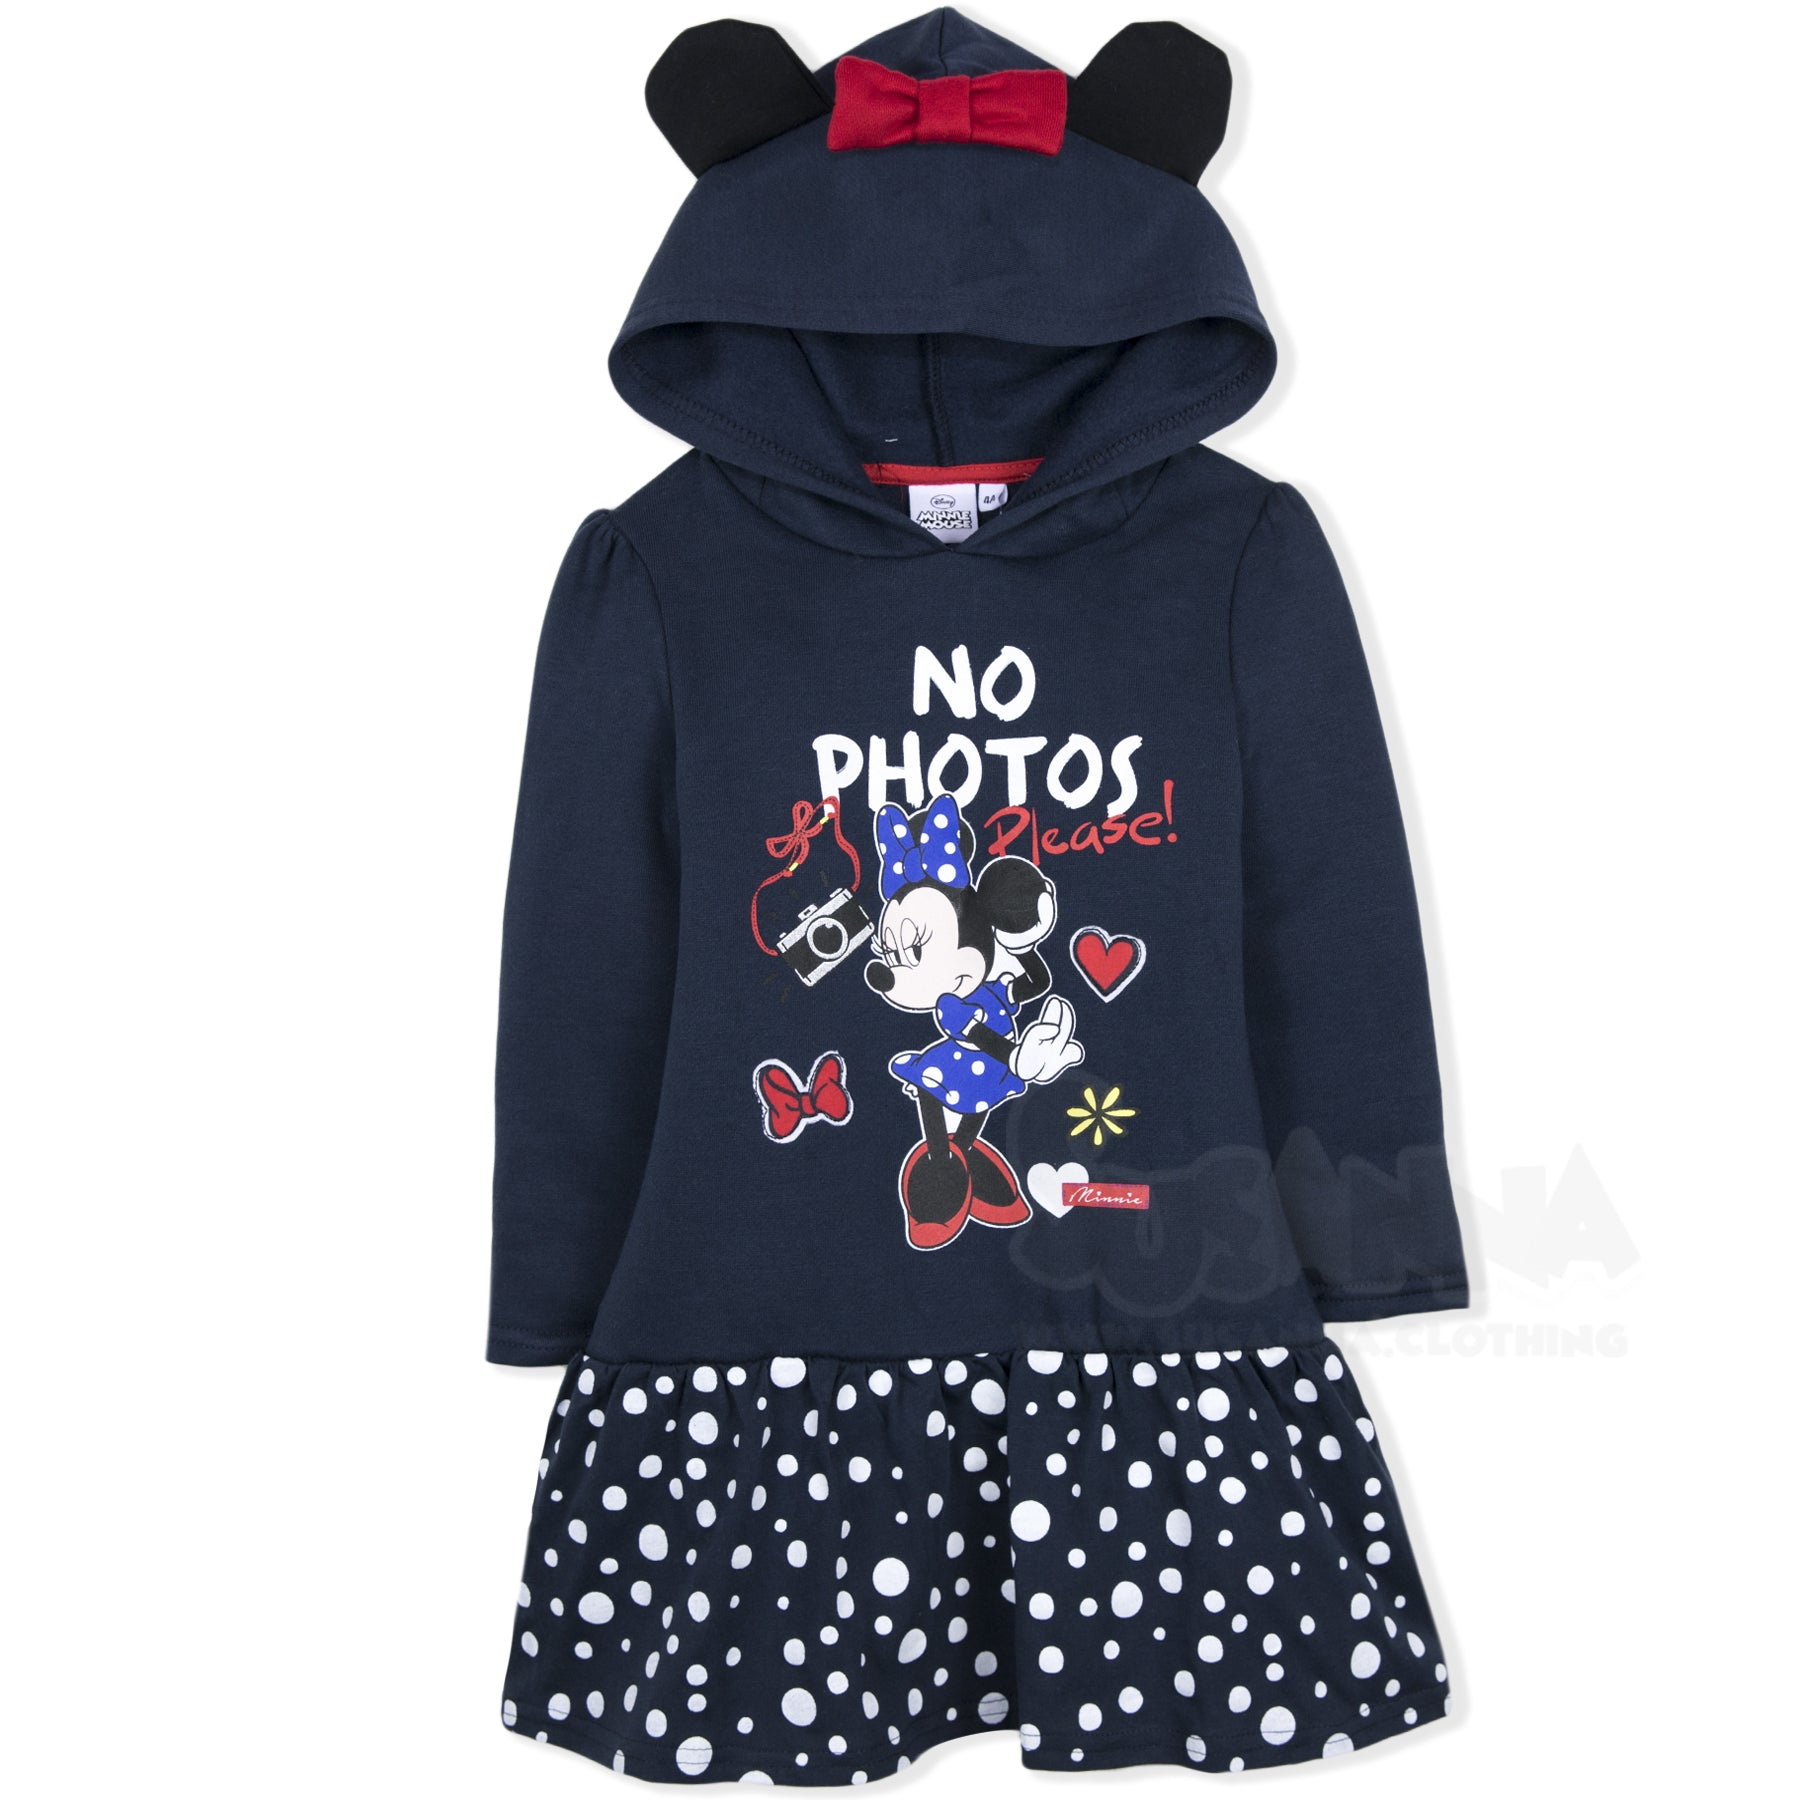 e2aebf670 Disney Minnie Mouse Girls Hoodie, Hooded Dress / Tunic 2-8 Years - Navy ...